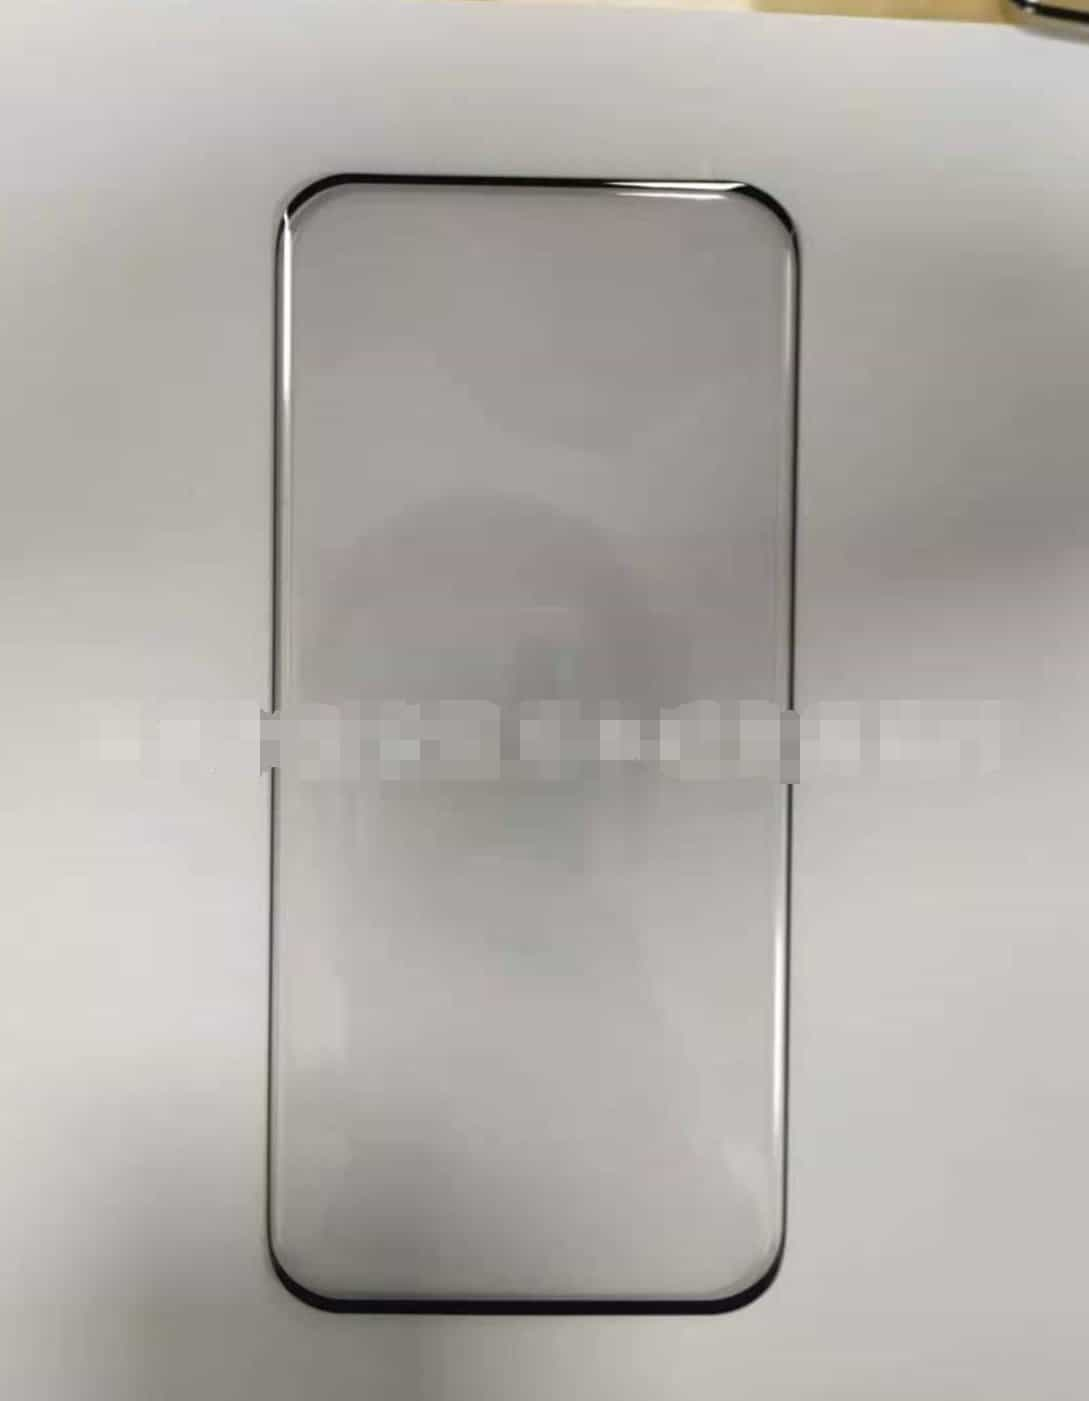 Xiaomi Mi 11 front panel or tempered glass screen protector leak